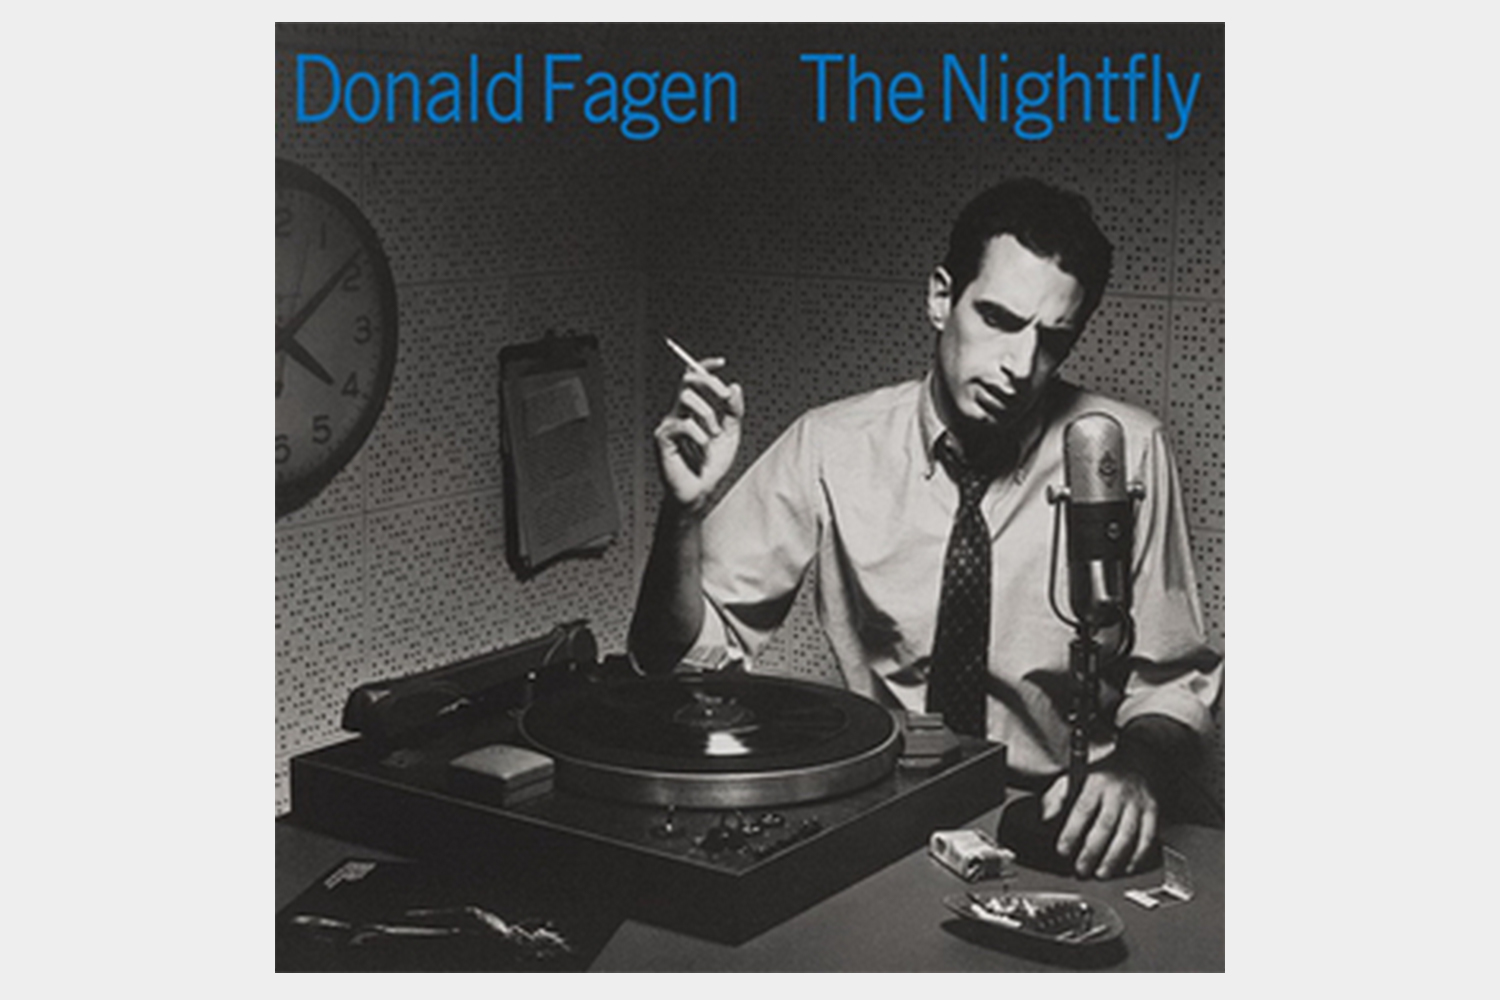 The Nightfly by Donald Fagan